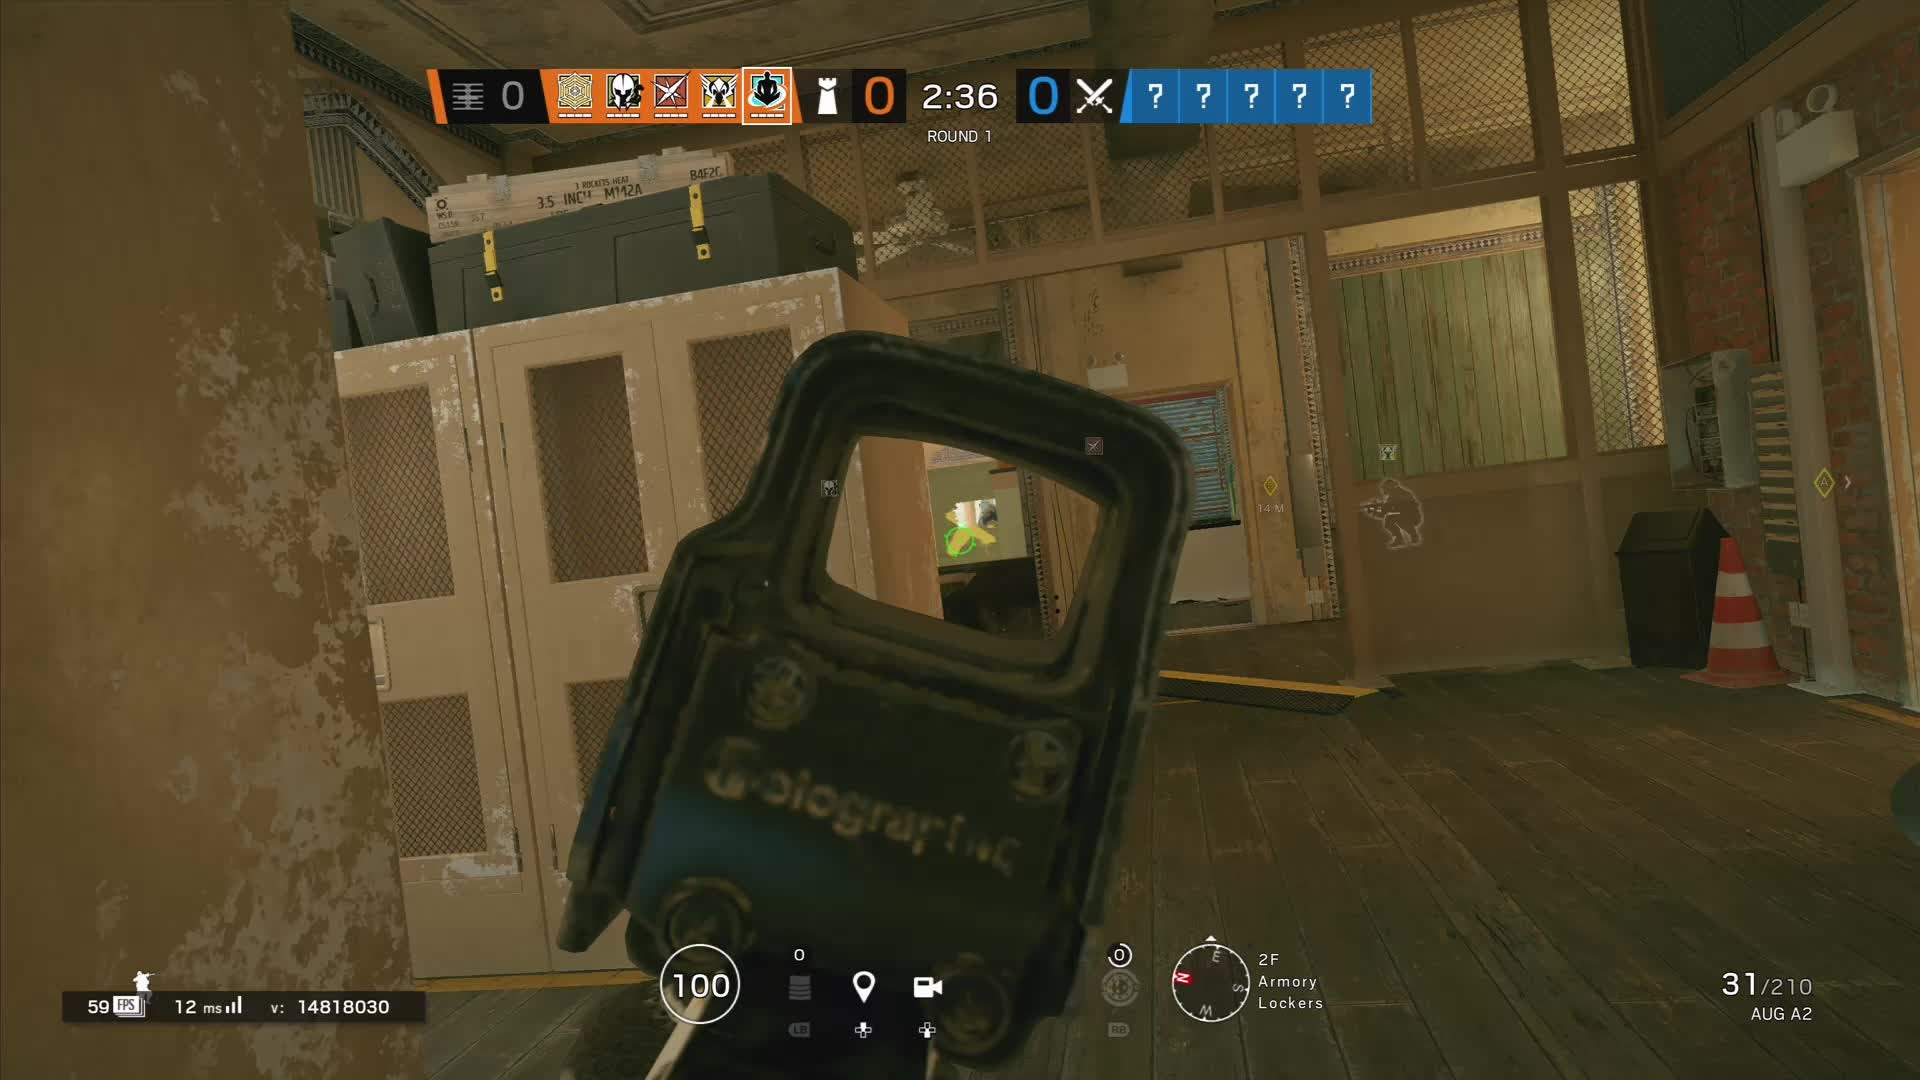 Rainbow Six: General - Crazy pistol kill while flashed video cover image 0